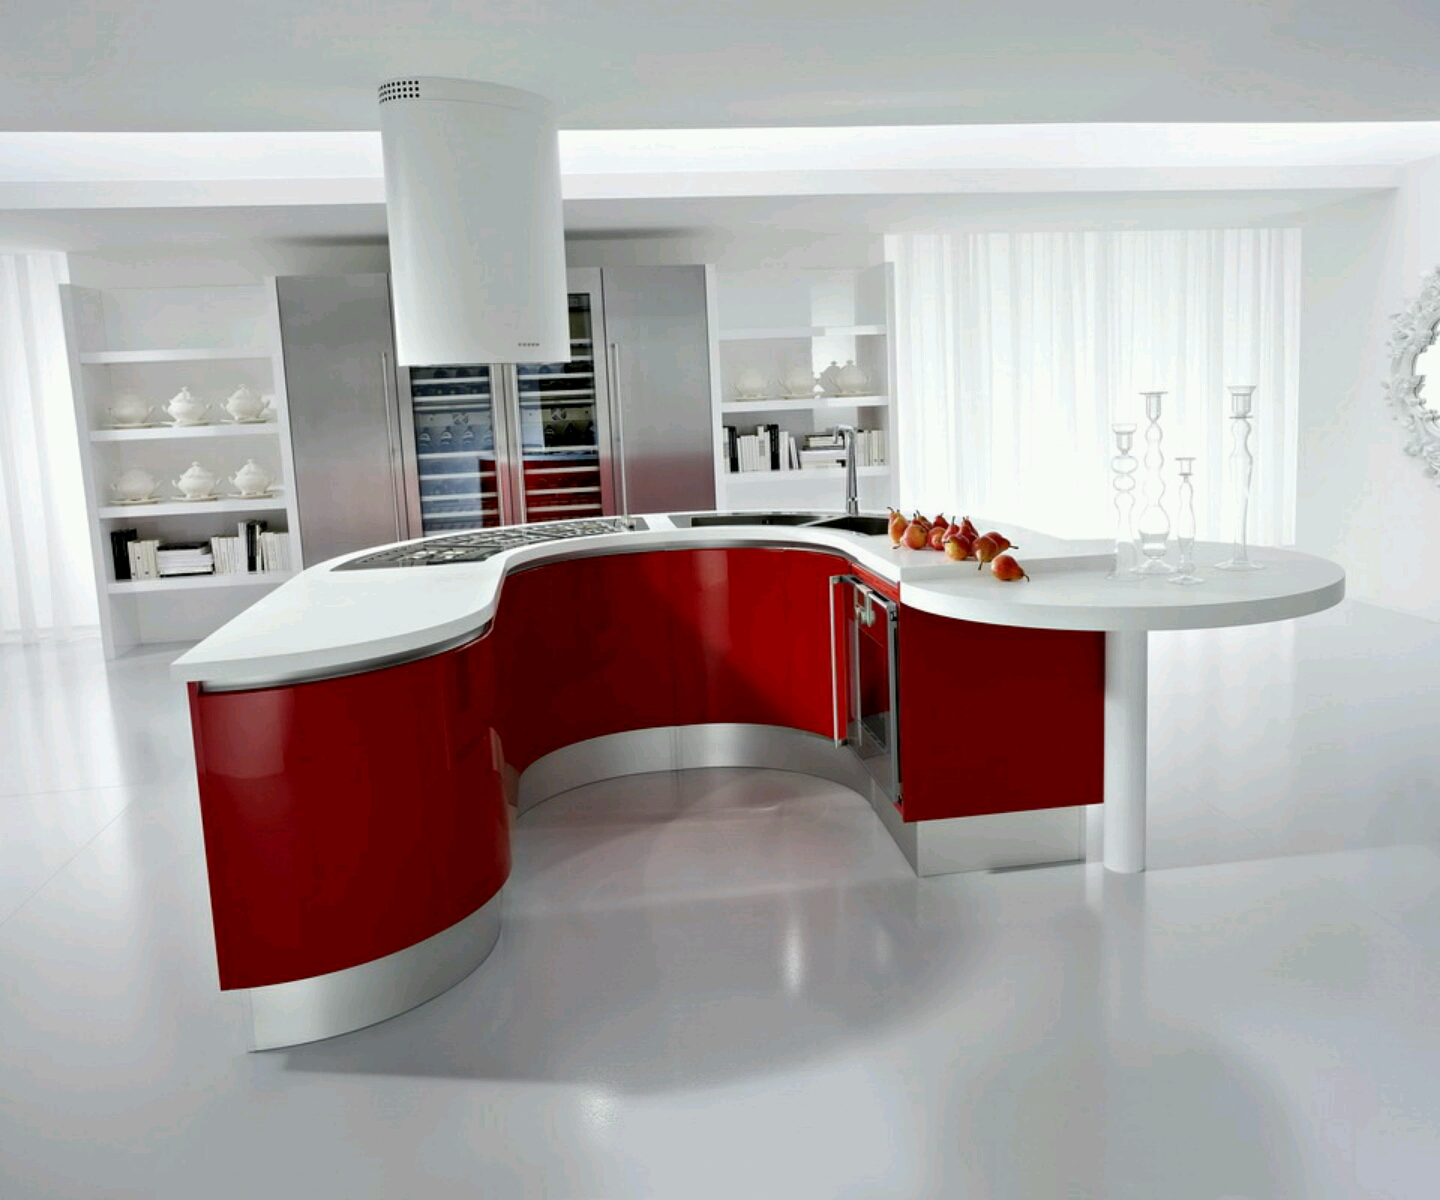 Modern kitchen cabinets designs ideas furniture gallery for New kitchen designs images